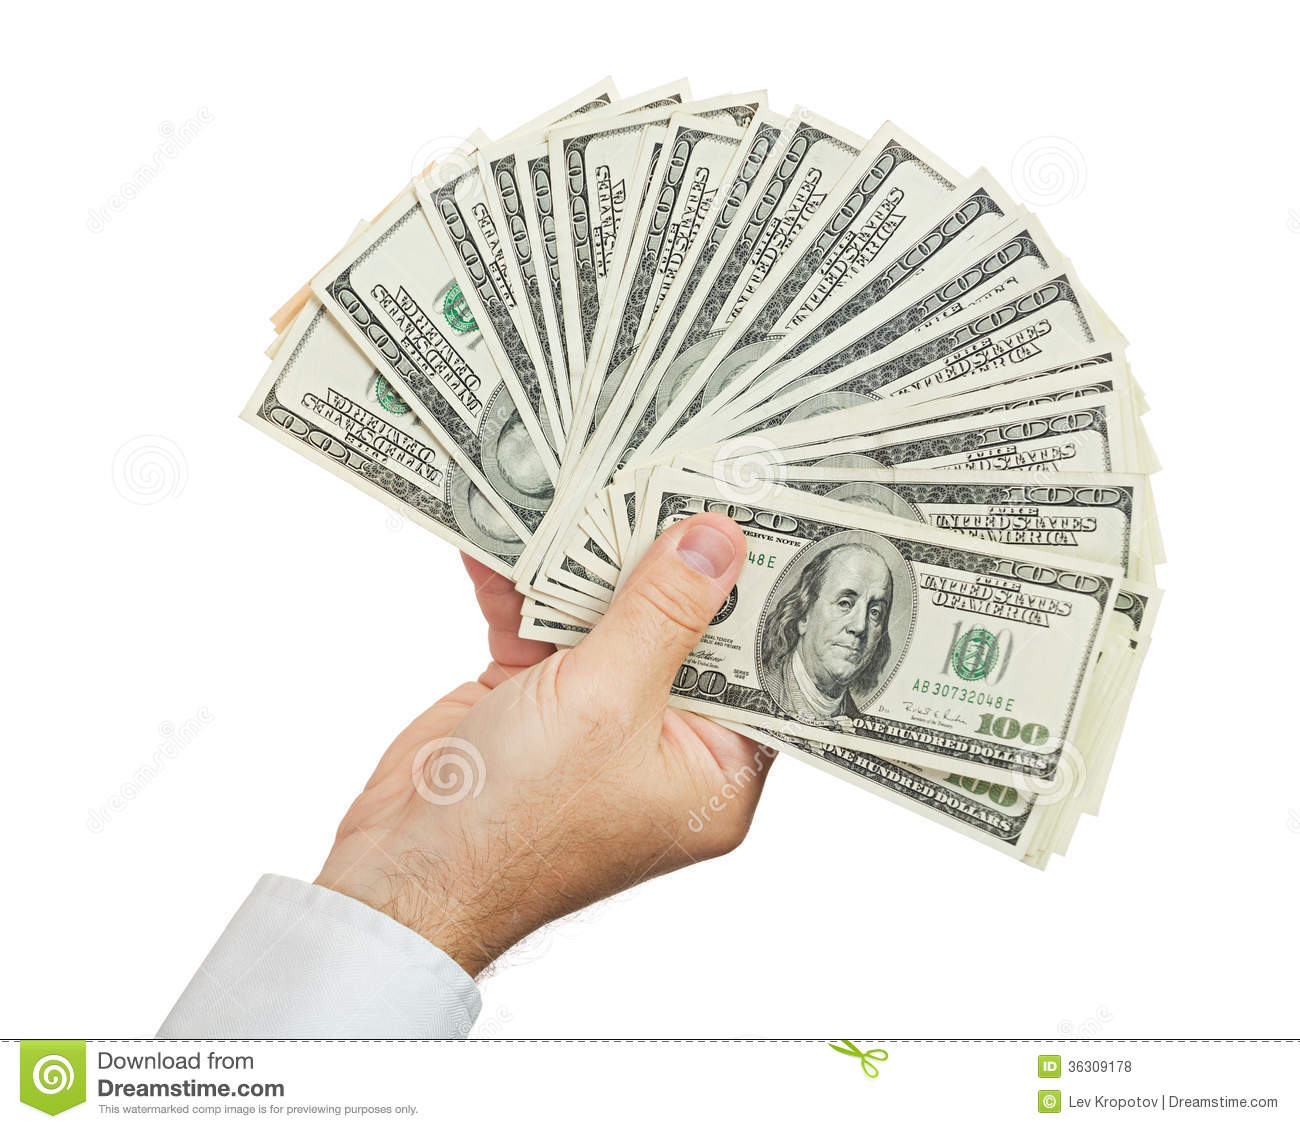 Hand With Money Royalty Free Stock Photos - Image: 36309178Holding Money In Hand